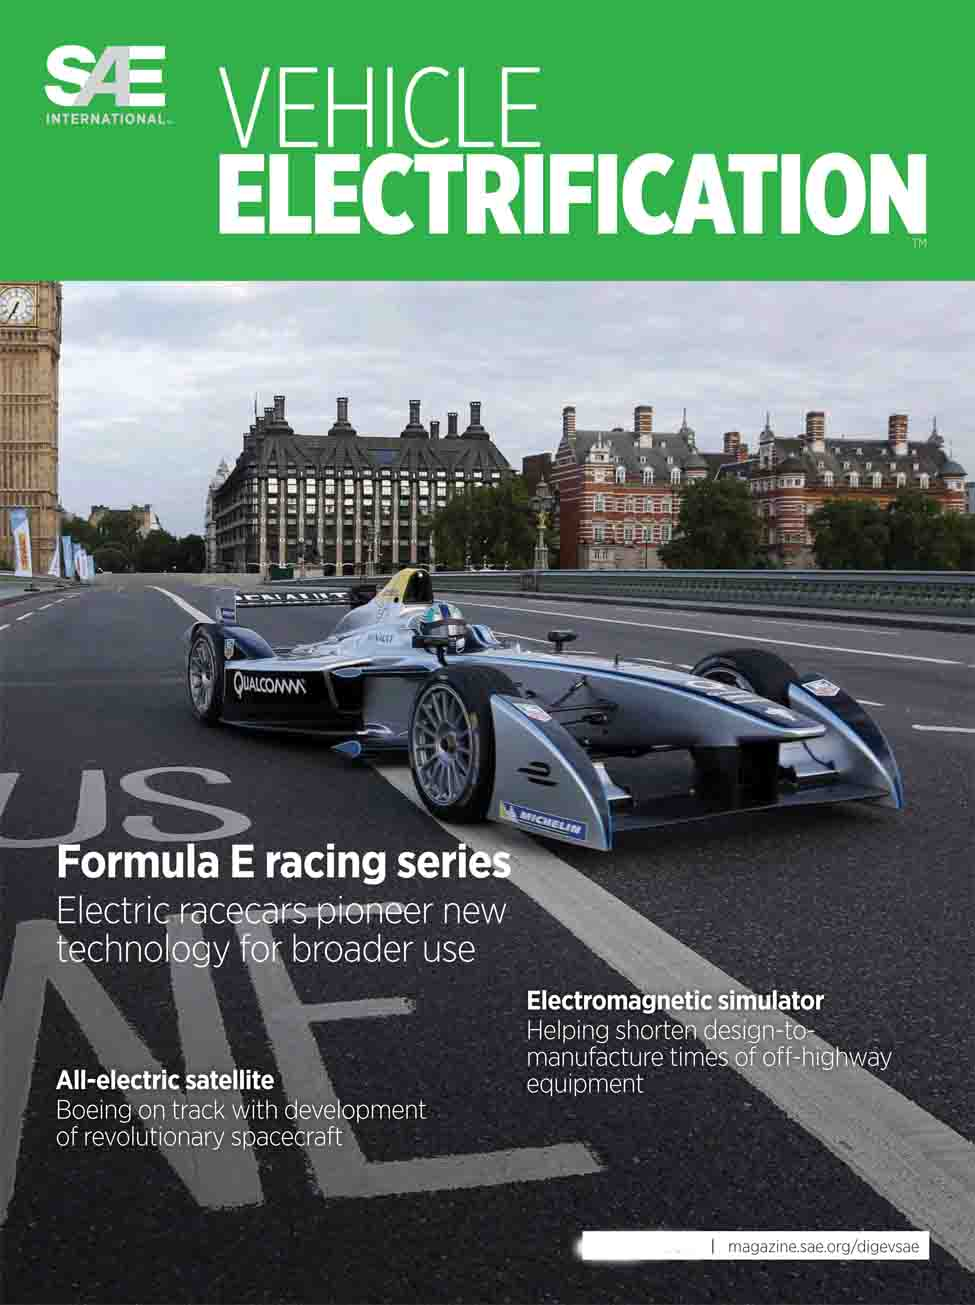 VEHICLE ELECTRIFICATION